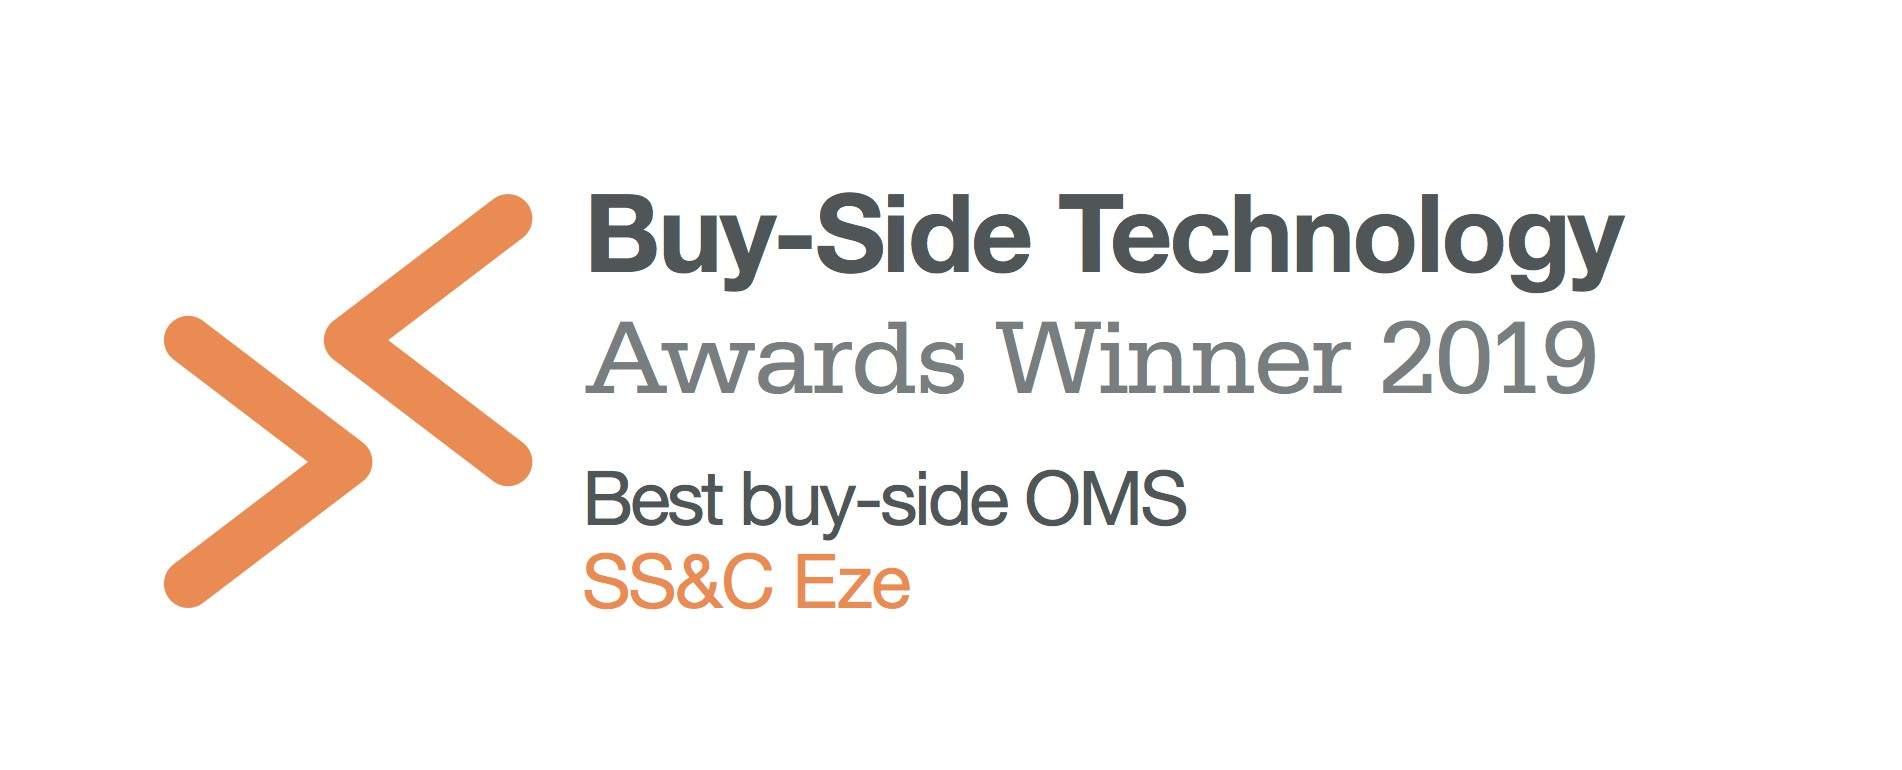 Best Buy-Side OMS